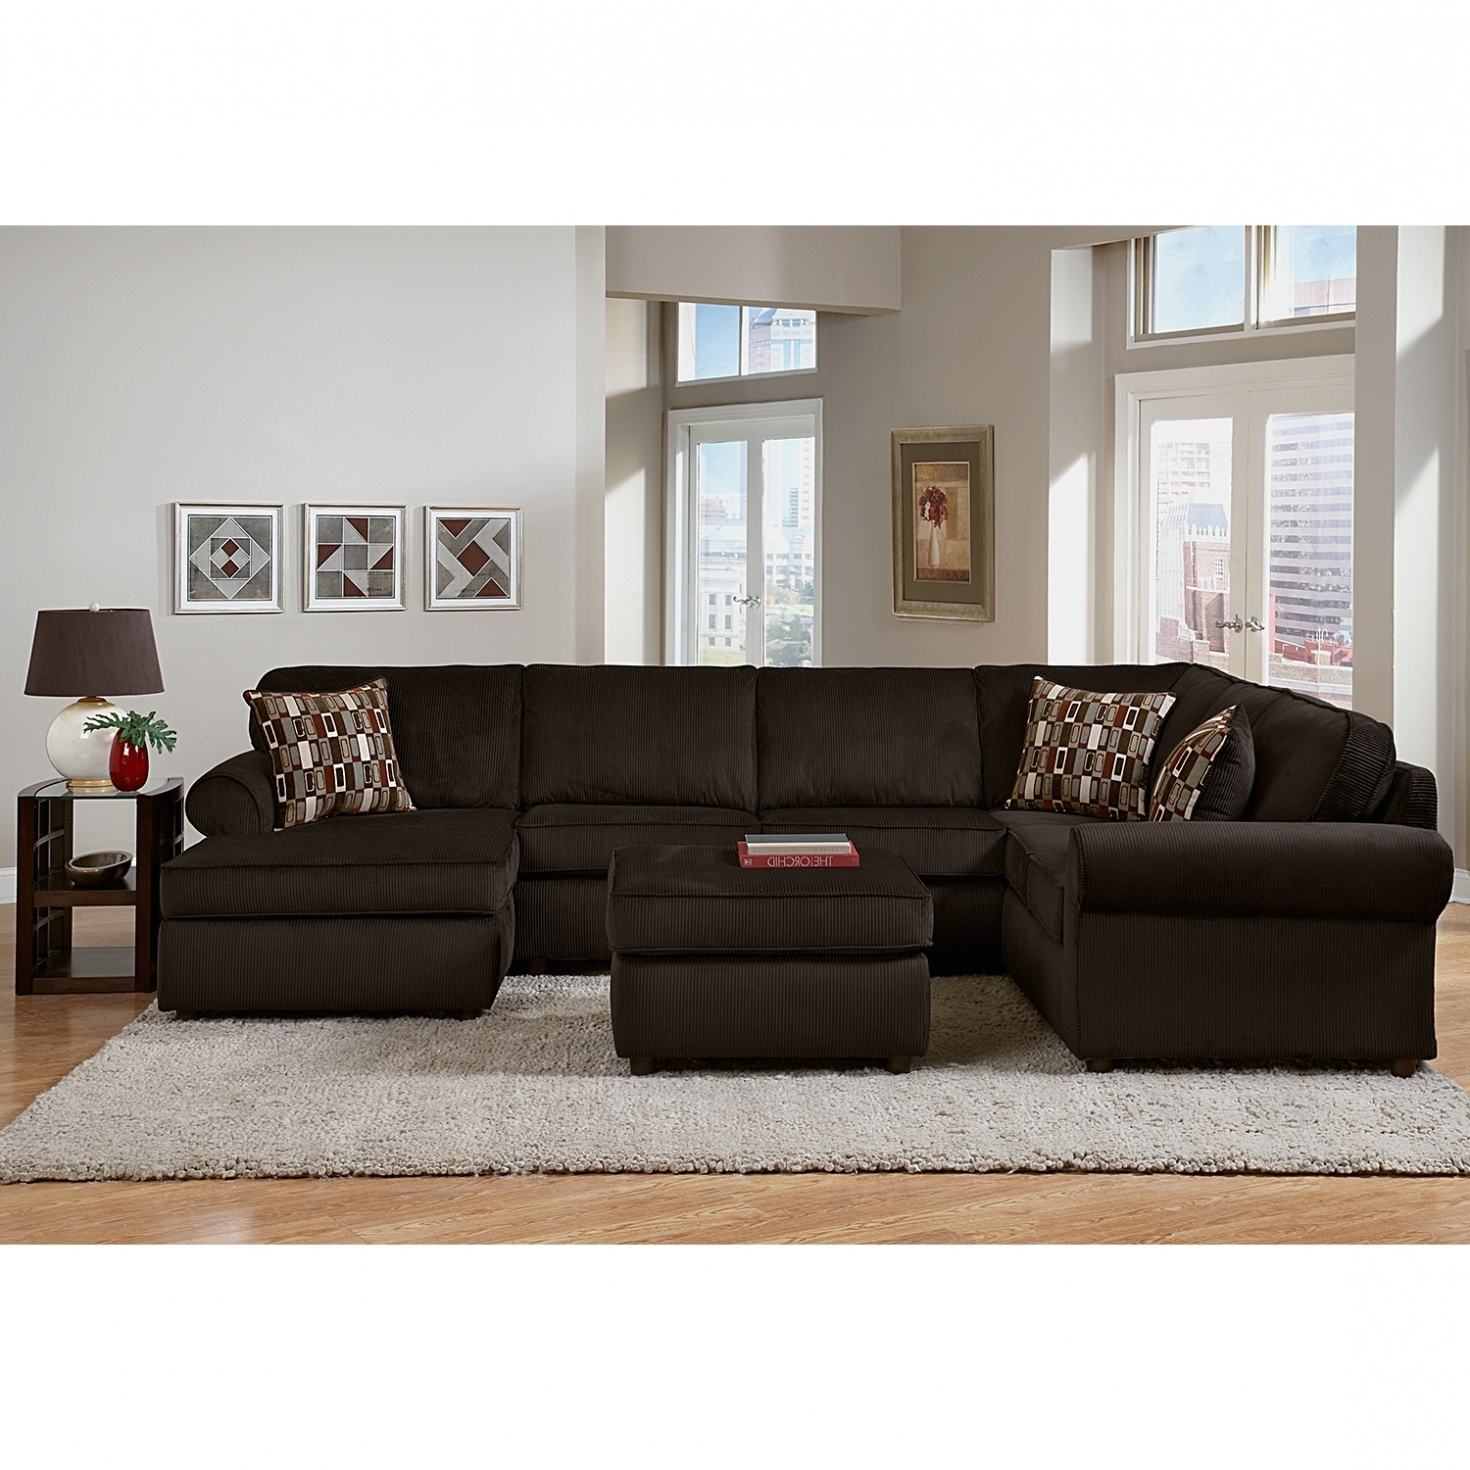 Favorite Furniture: New Value City Sectional Sofa 32 For Living Room Sofa Intended For Value City Sofas (View 11 of 15)